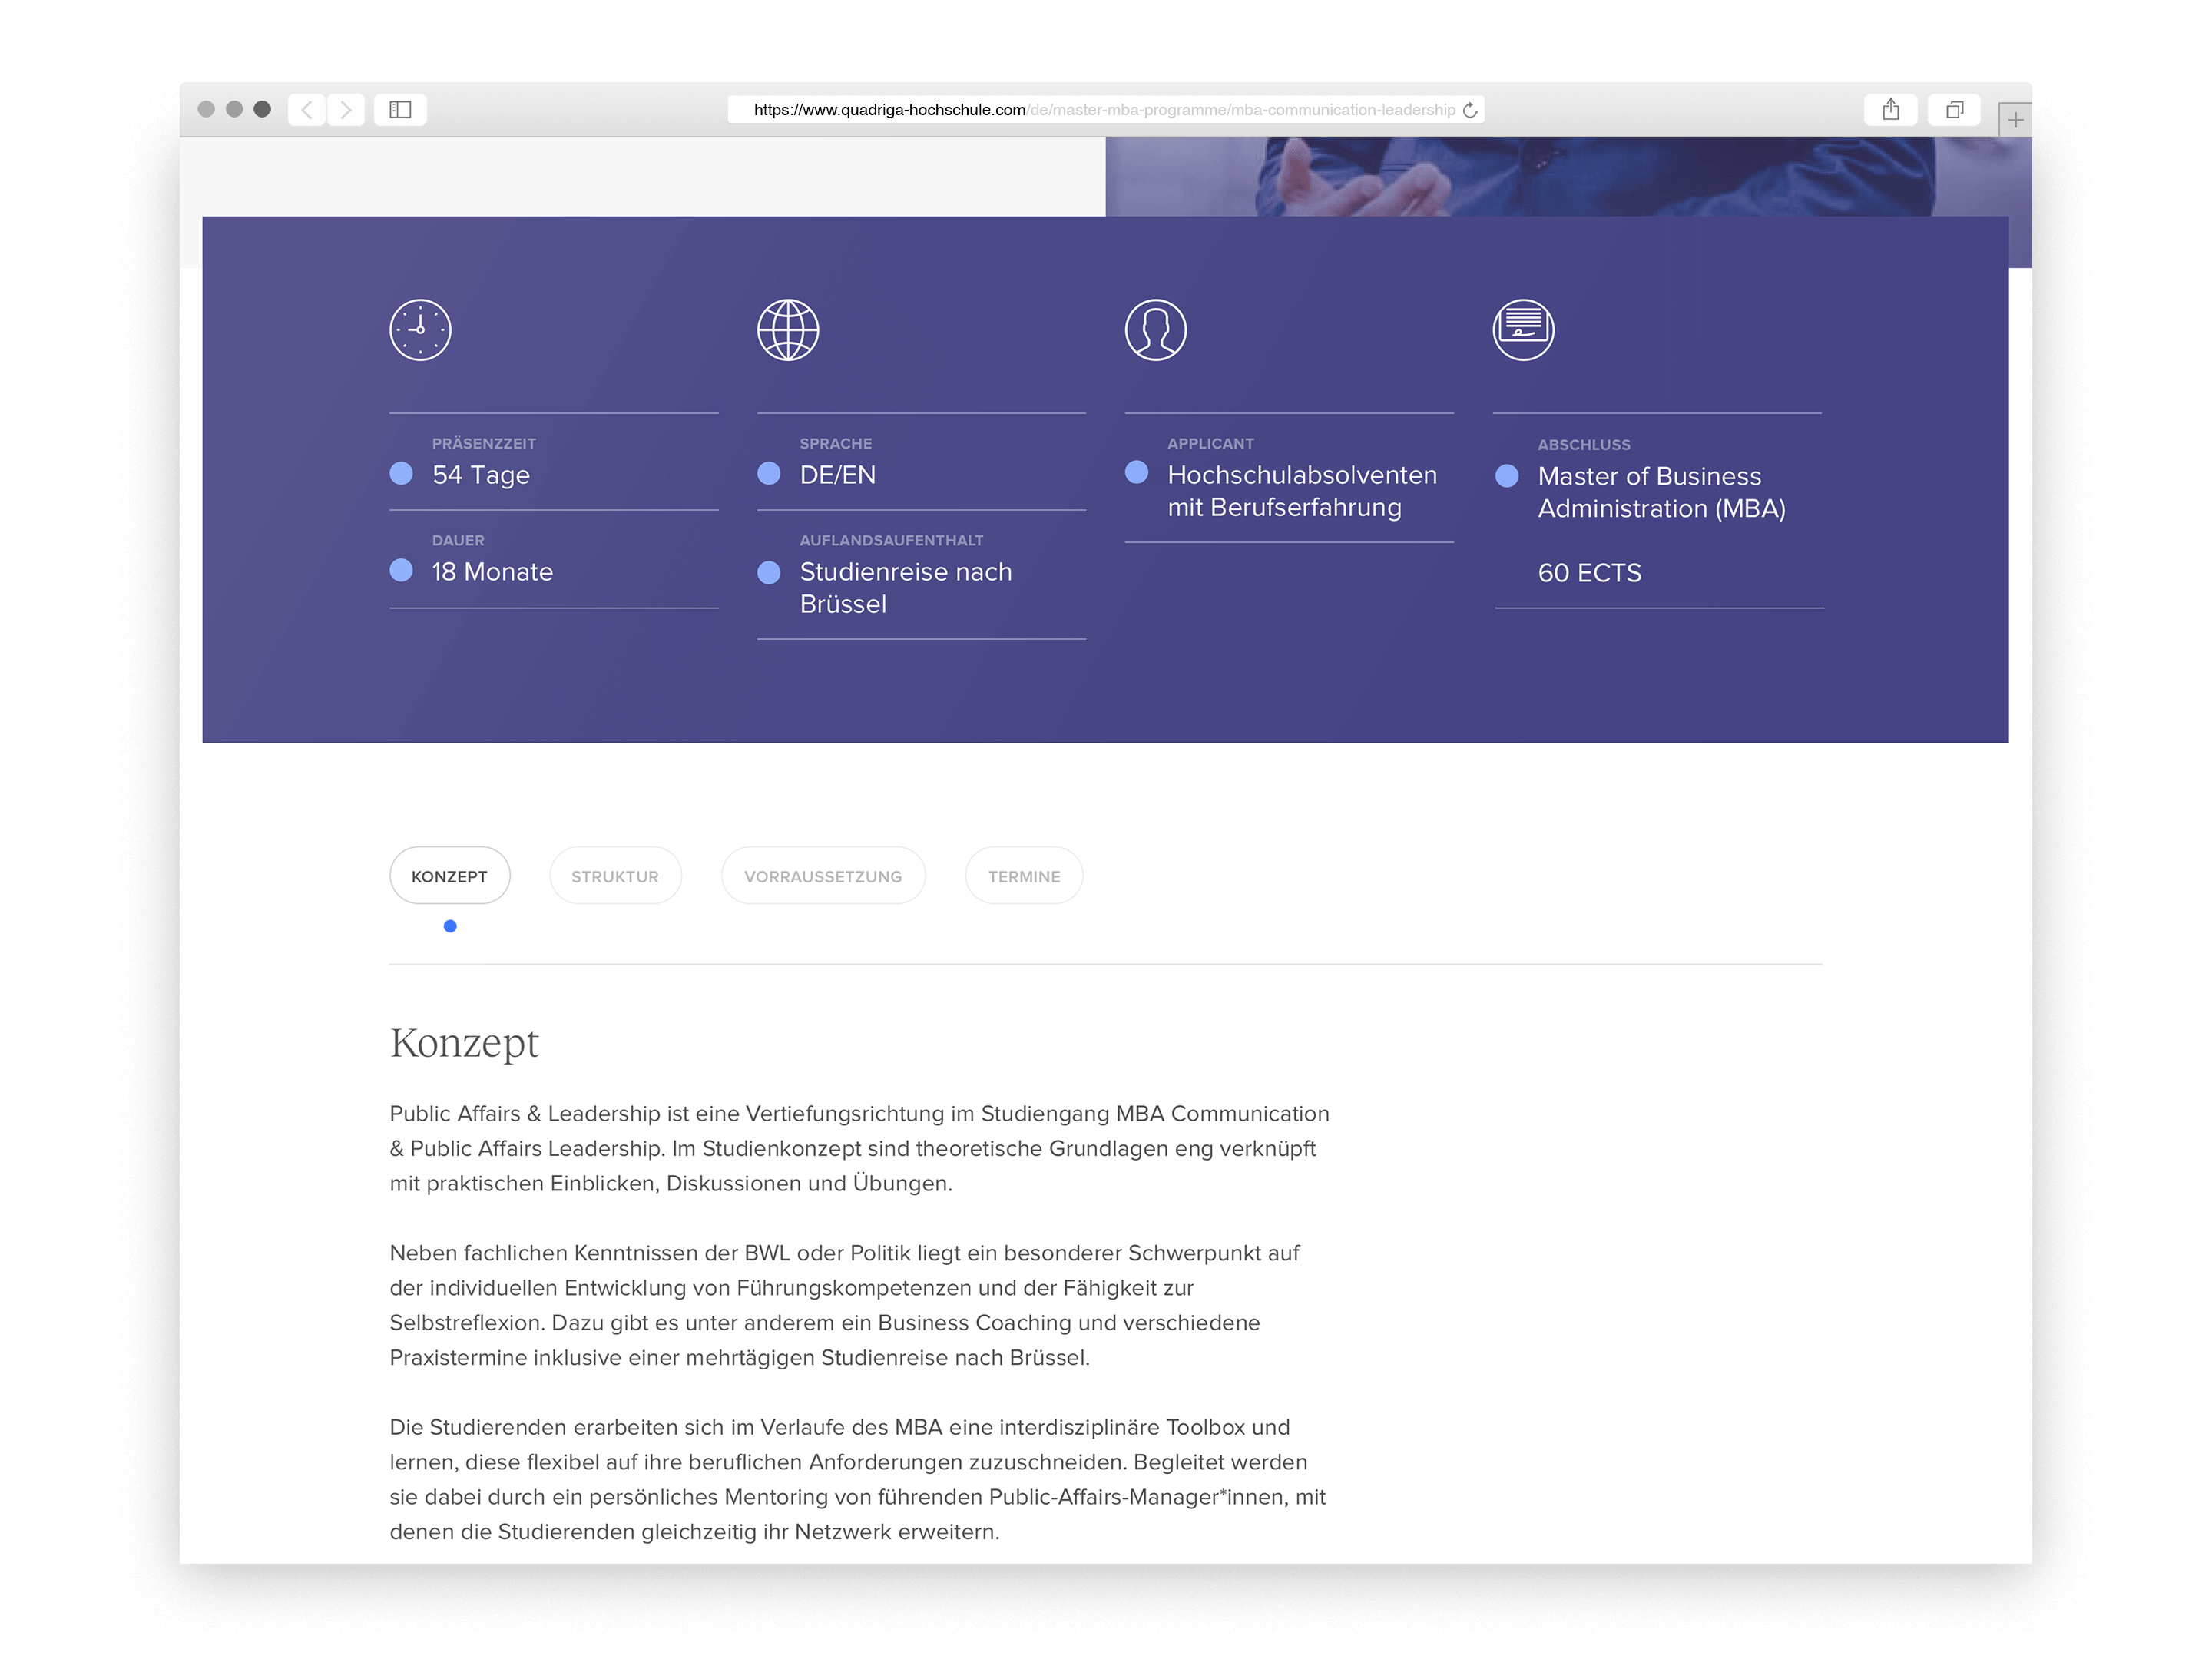 Quadriga University product detail page